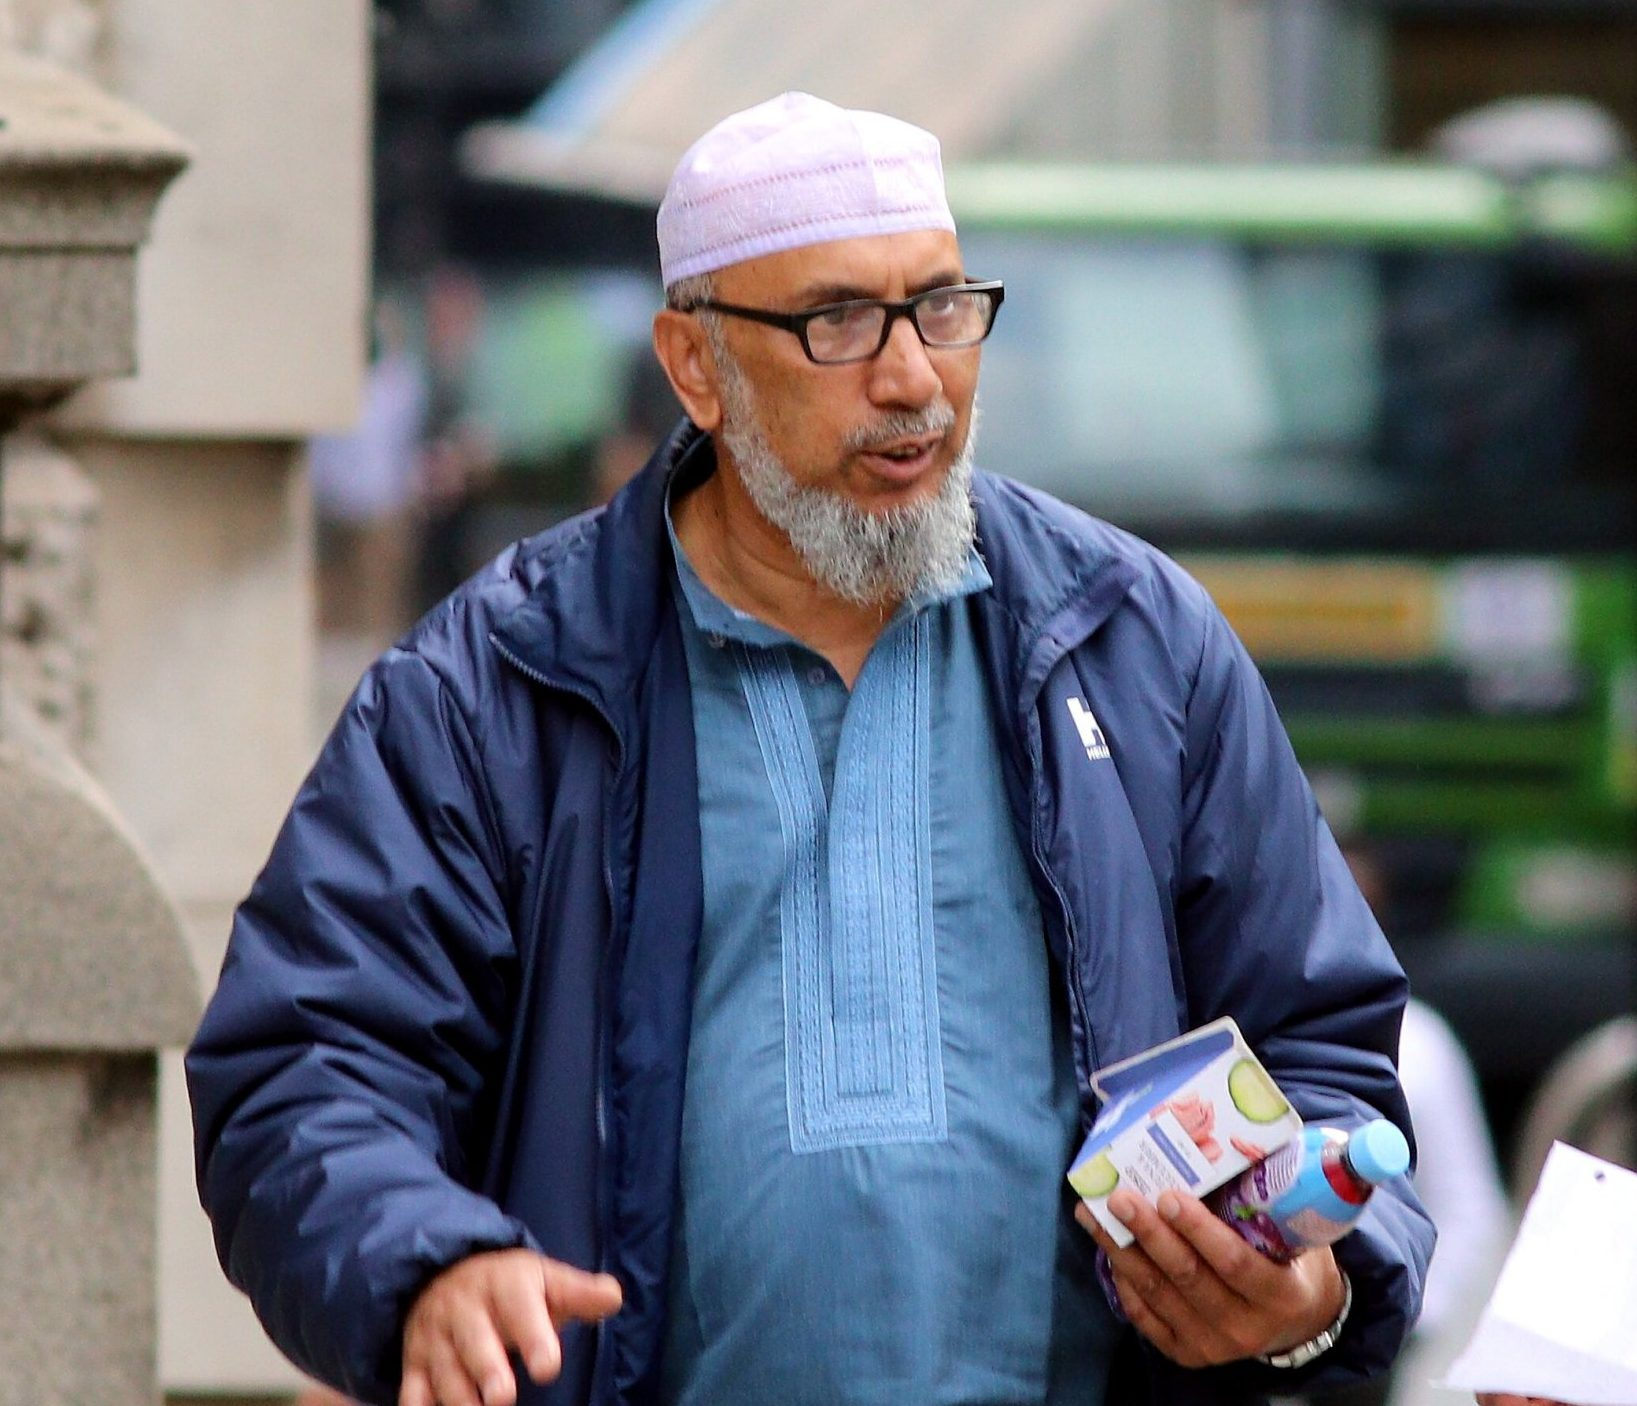 Pic shows Abdul Jalil A Bangladeshi immigrant who told the government he had only ?50 to his name when he had over ?86,000 so he could keep his benefits was spared jail today (weds). Abdul Jalil, 64, started claiming handouts in the late 1990s but exceeded the prescribed amount of assets in 2008 when he acquired a loan of around ?25,000 to buy his council house. He did not notify the Department for Work and Pensions (DWP) and continued wrongly claiming benefits in excess of ?28,000 over an eight-year period. SEE STORY CENTRAL NEWS